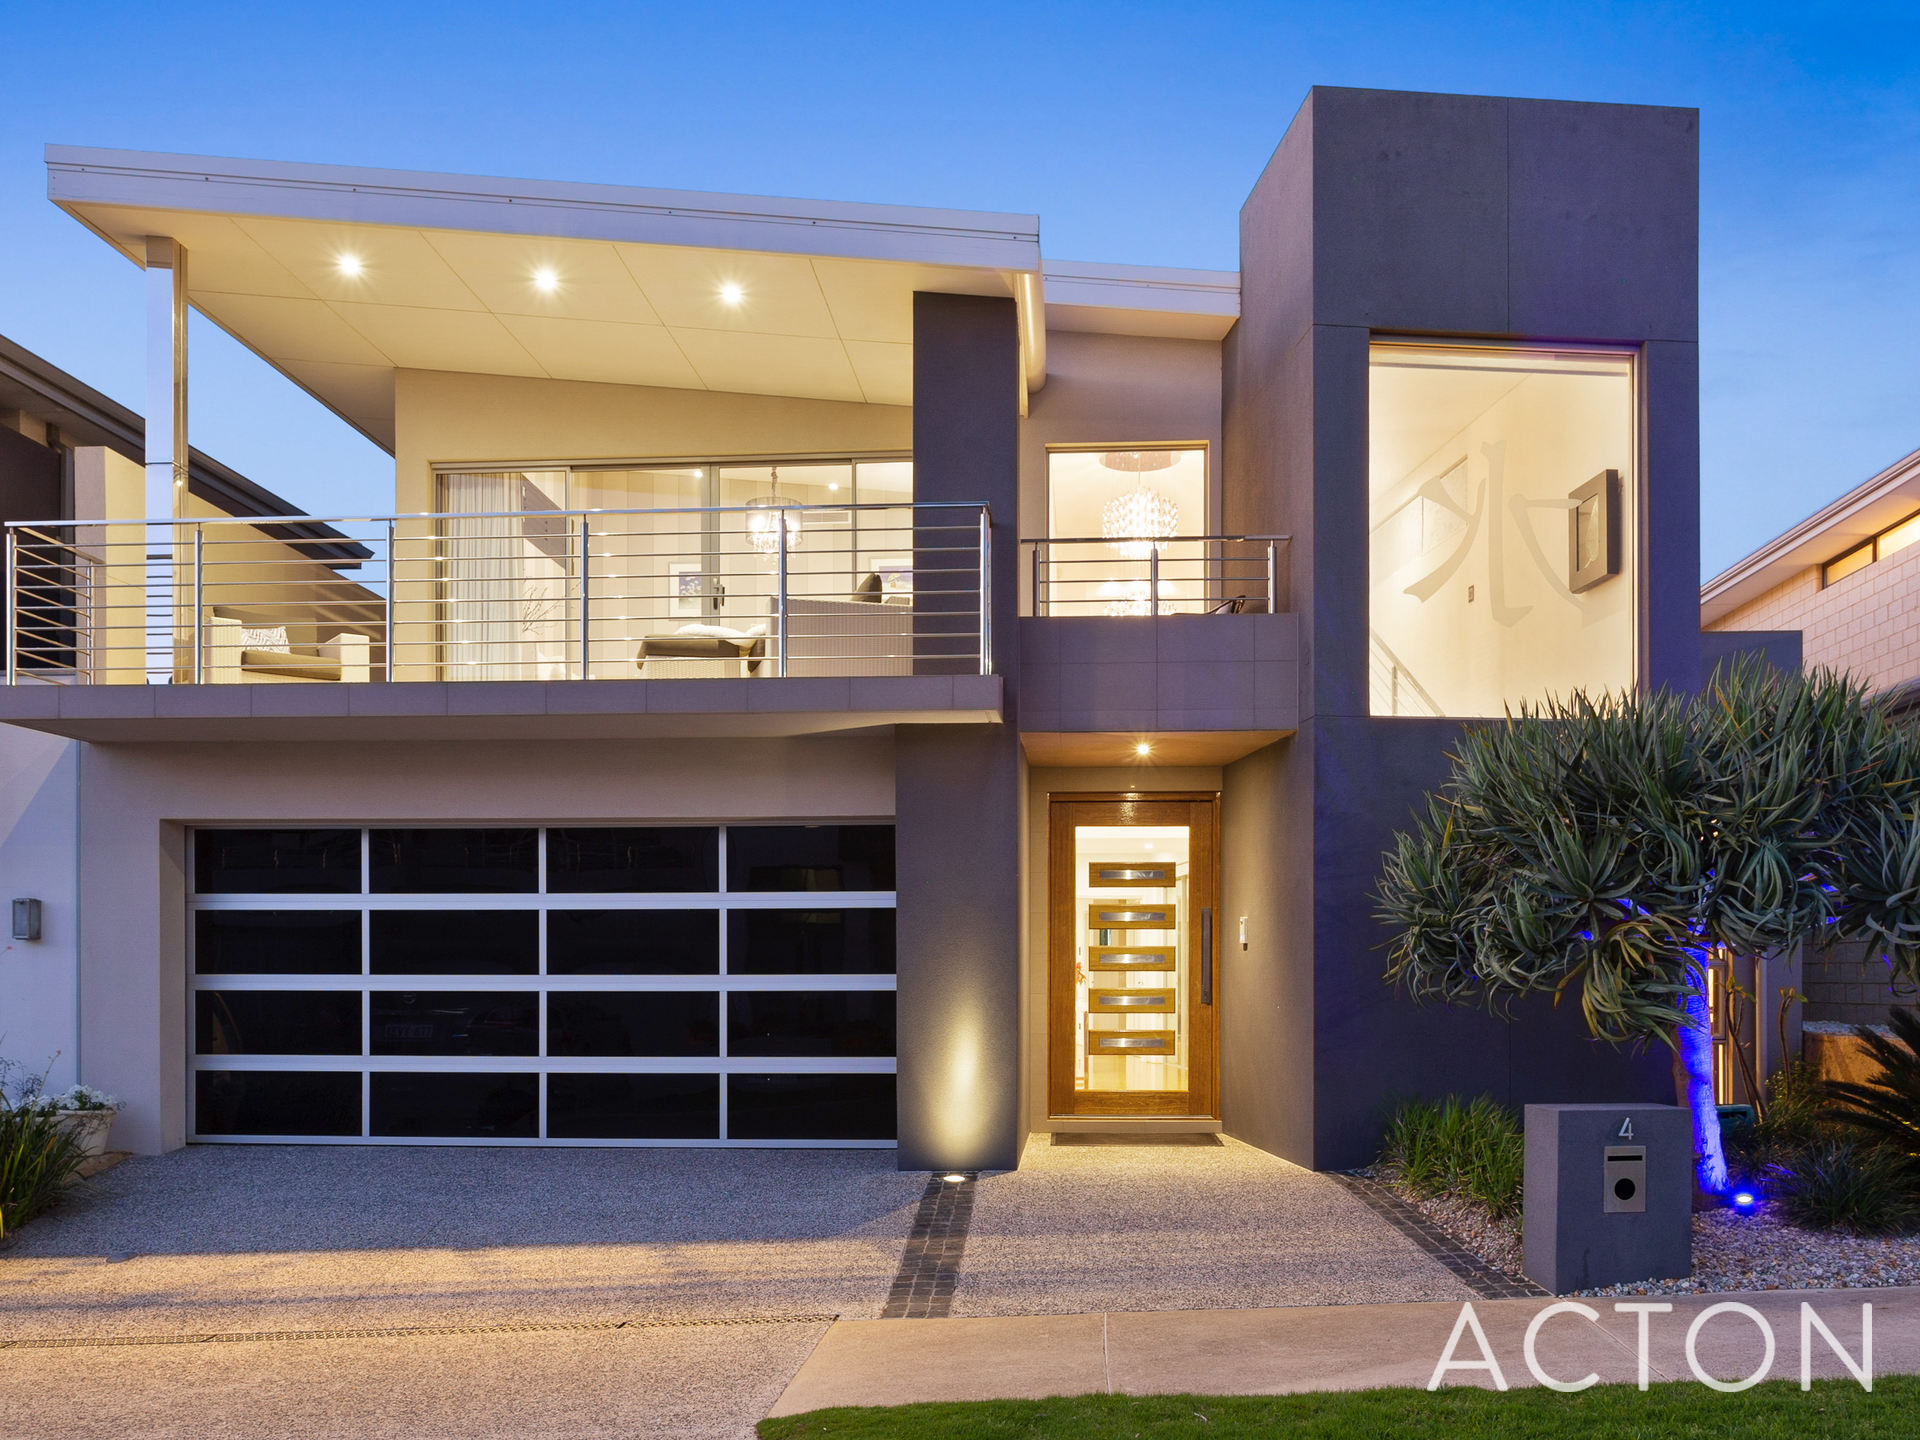 4 Draper Street North Coogee - House For Sale - 21303553 - ACTON Coogee